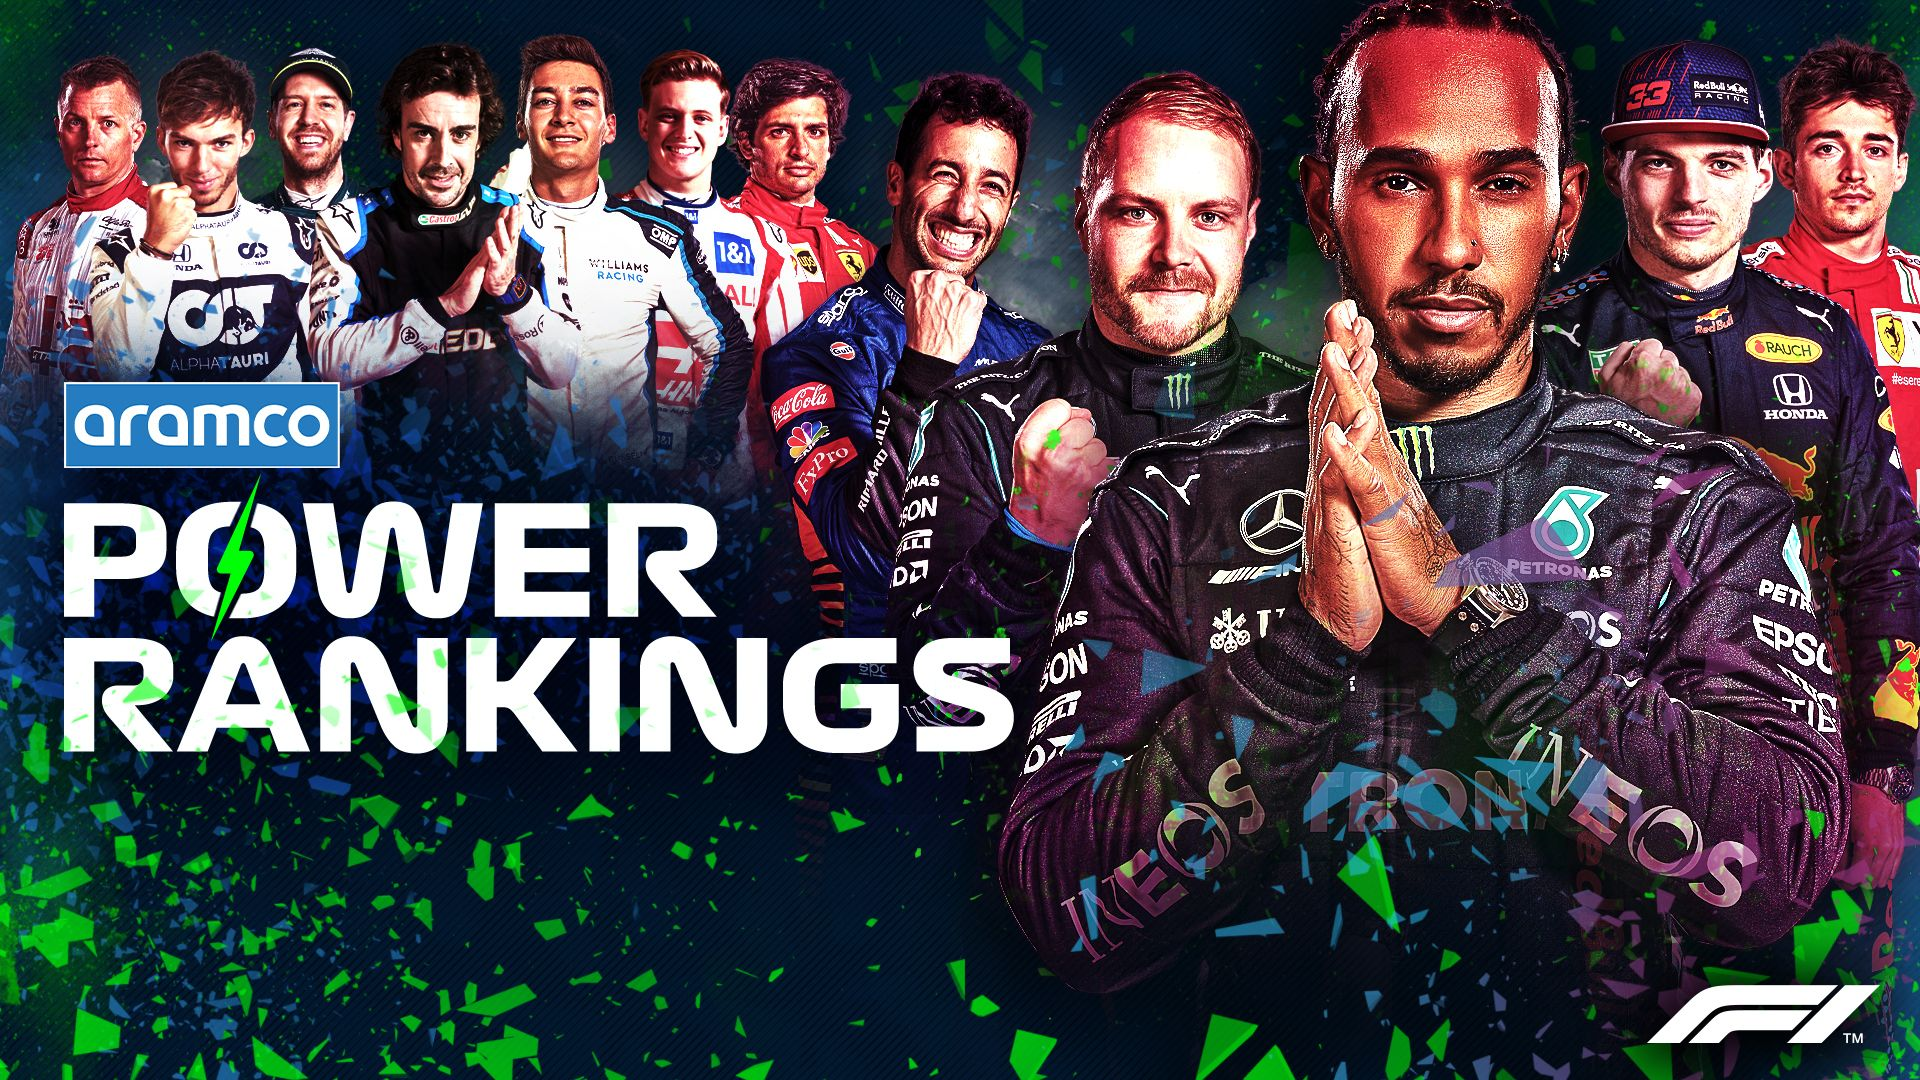 F1 POWER RANKINGS WITH ARAMCO: Who's top of the table after the nail-biting French Grand Prix? | Formula 1®